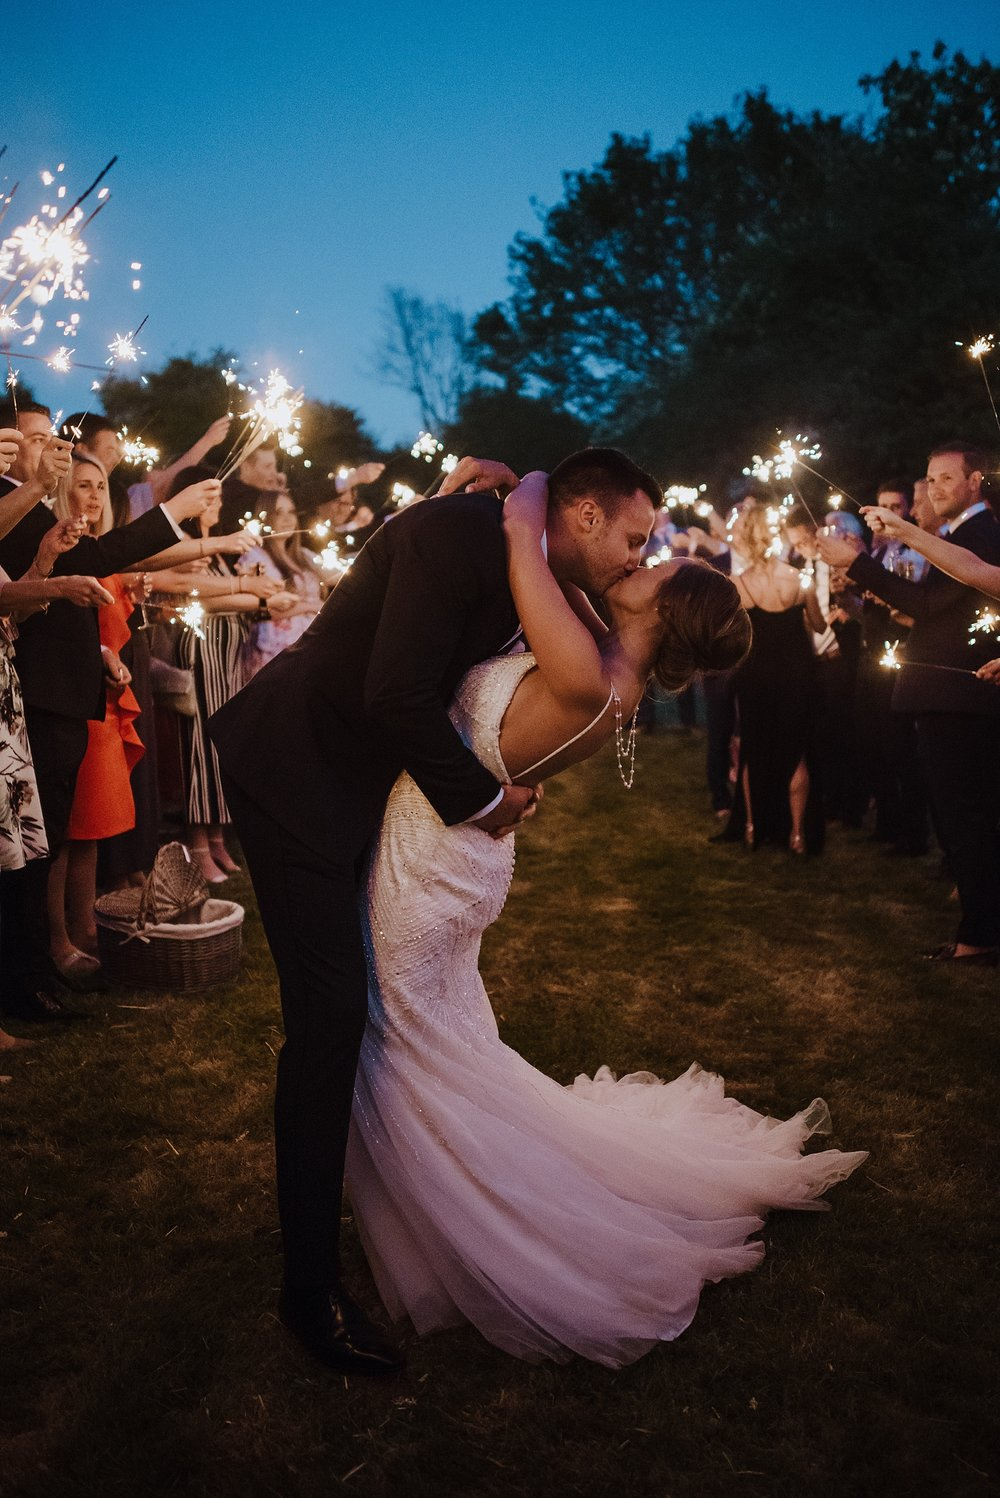 sparkler photo ideas